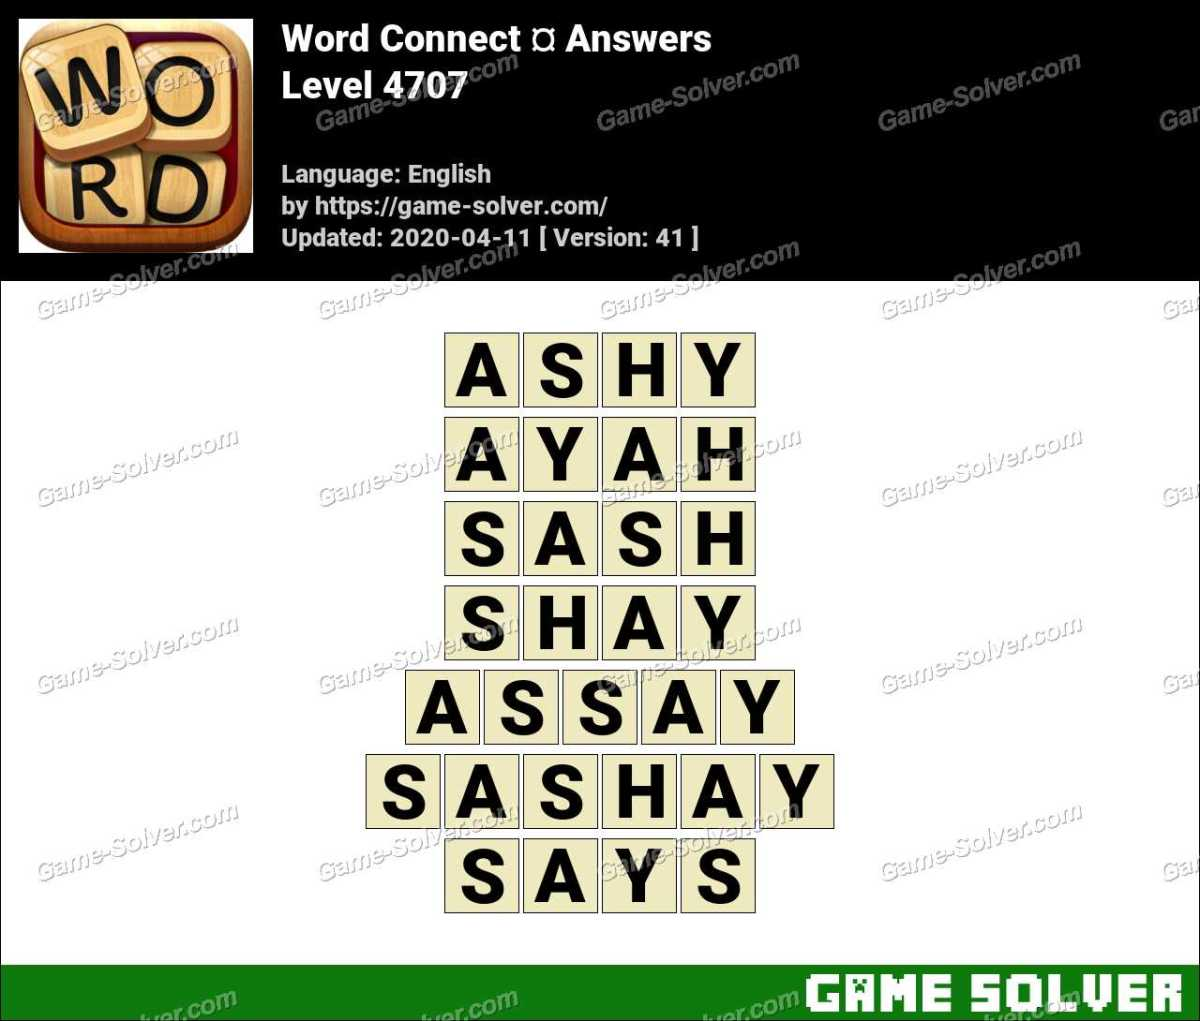 Word Connect Level 4707 Answers